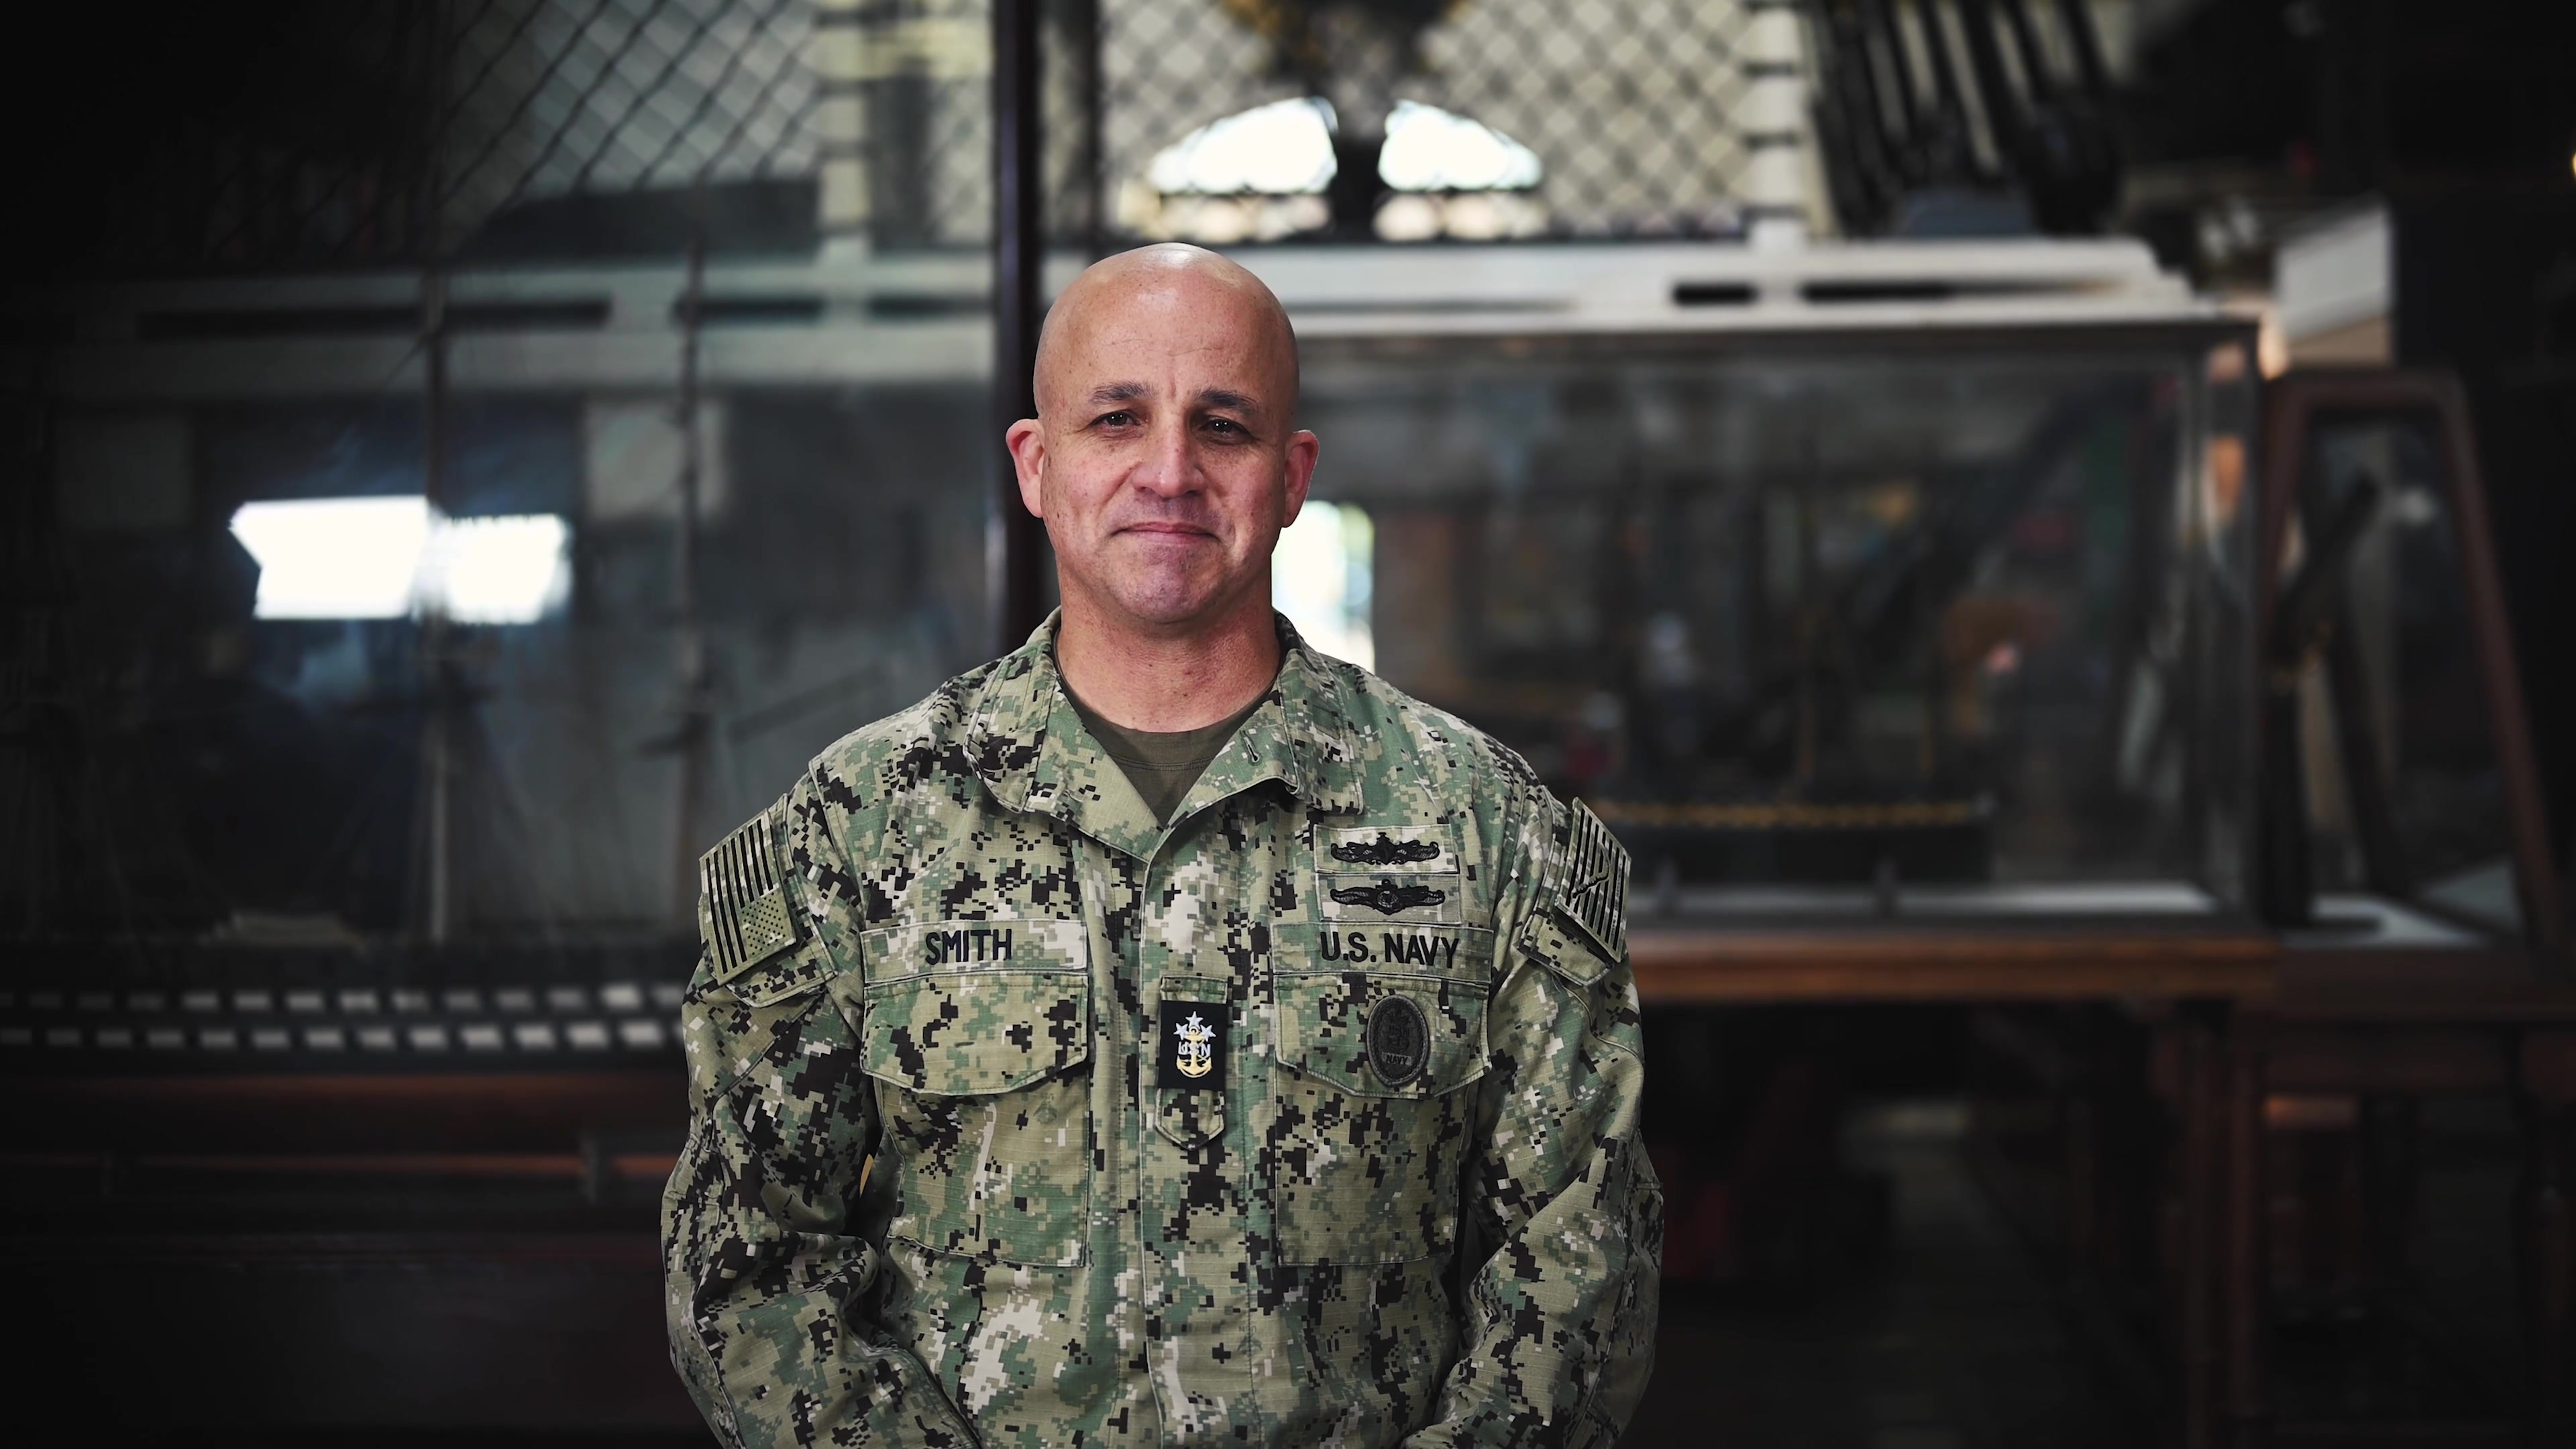 A message from the 15th Master Chief Petty Officer of the Navy, Master Chief Russell Smith commemorating the U.S. Navy's 245th birthday. (U.S. Navy video production by All Hands Magazine/ Navy Production, Defense Media Activity)